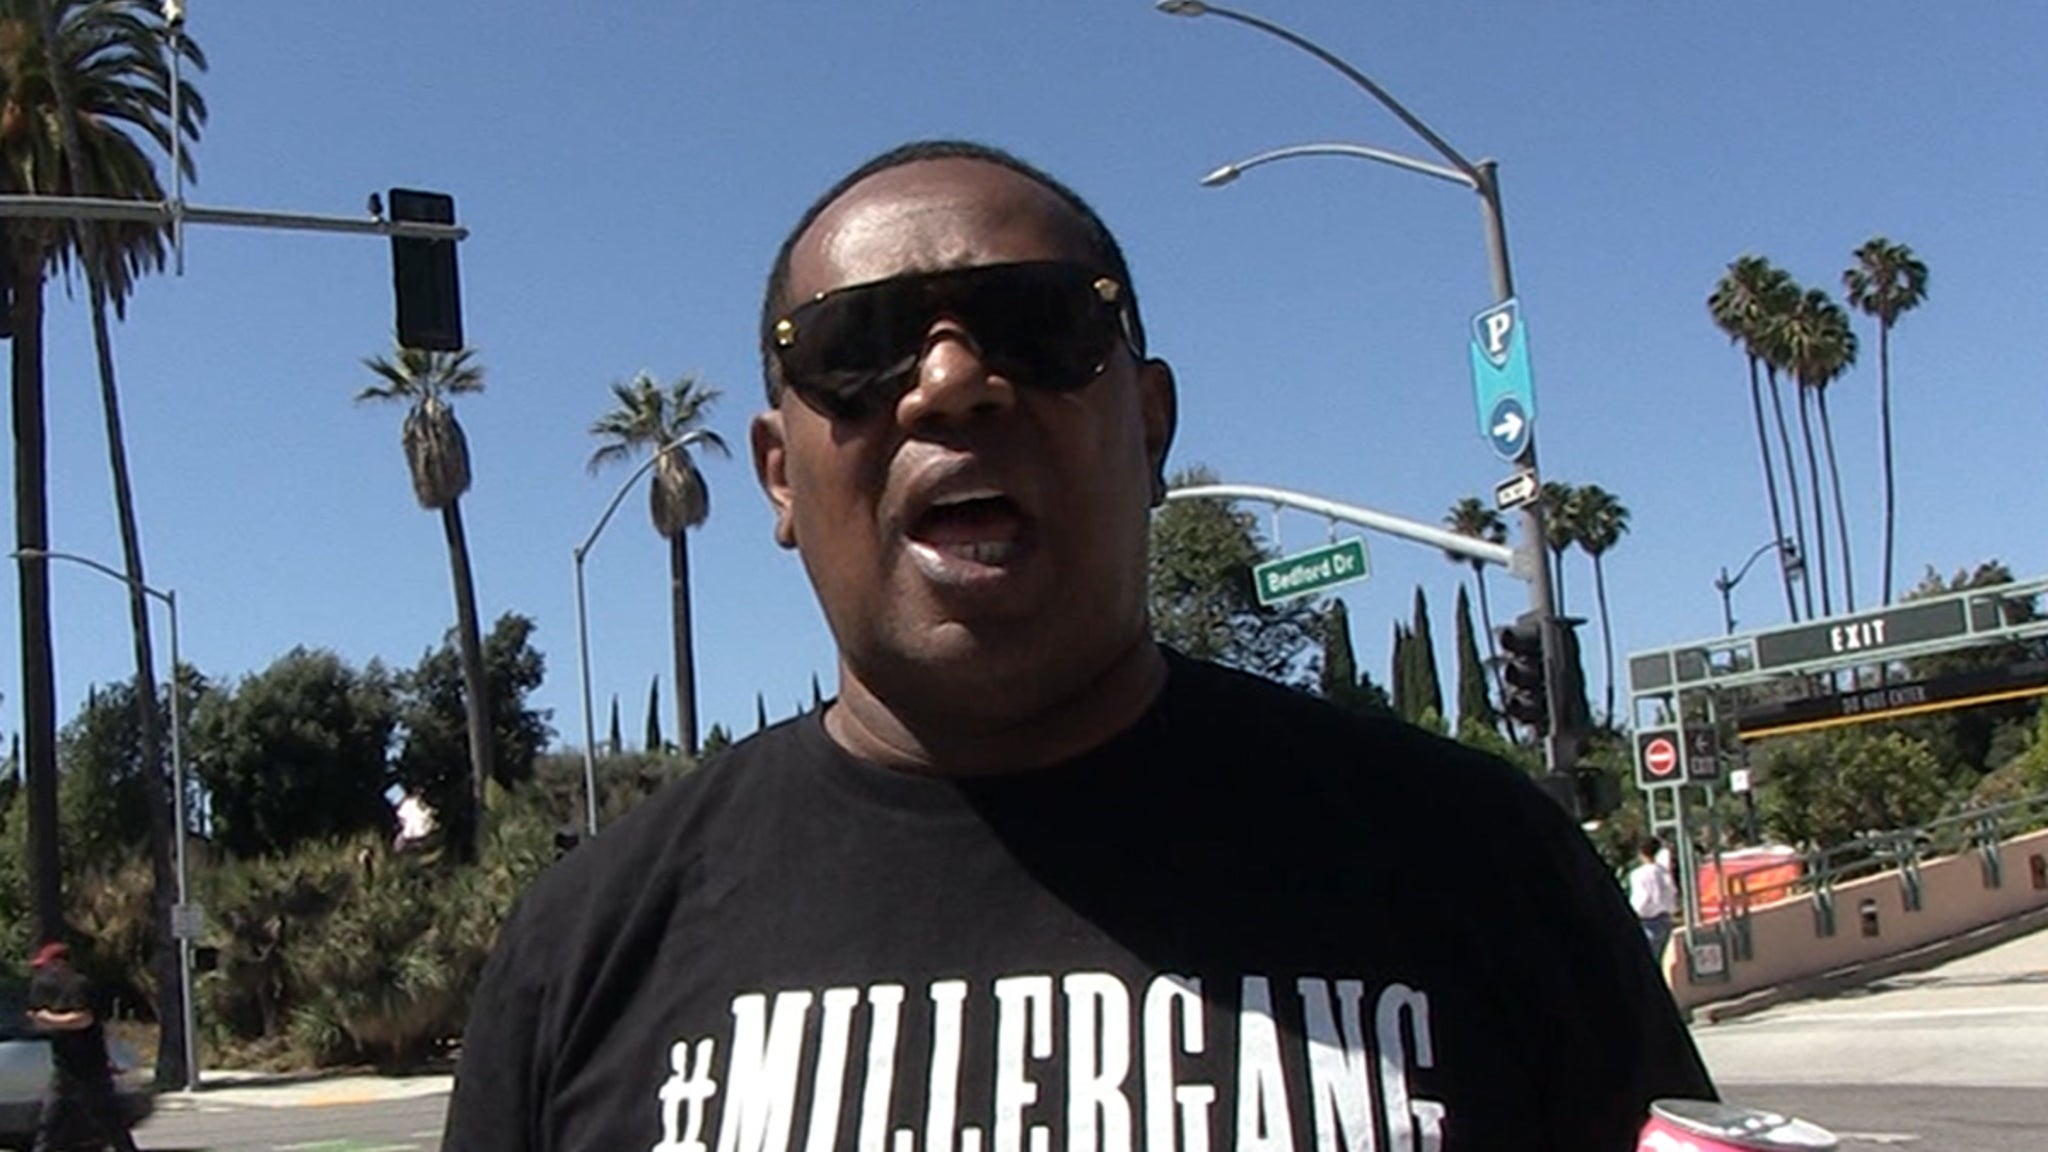 Master P Says Nick Cannon Shouldn't Have to Apologize for Anti-Semitic Remarks - TMZ